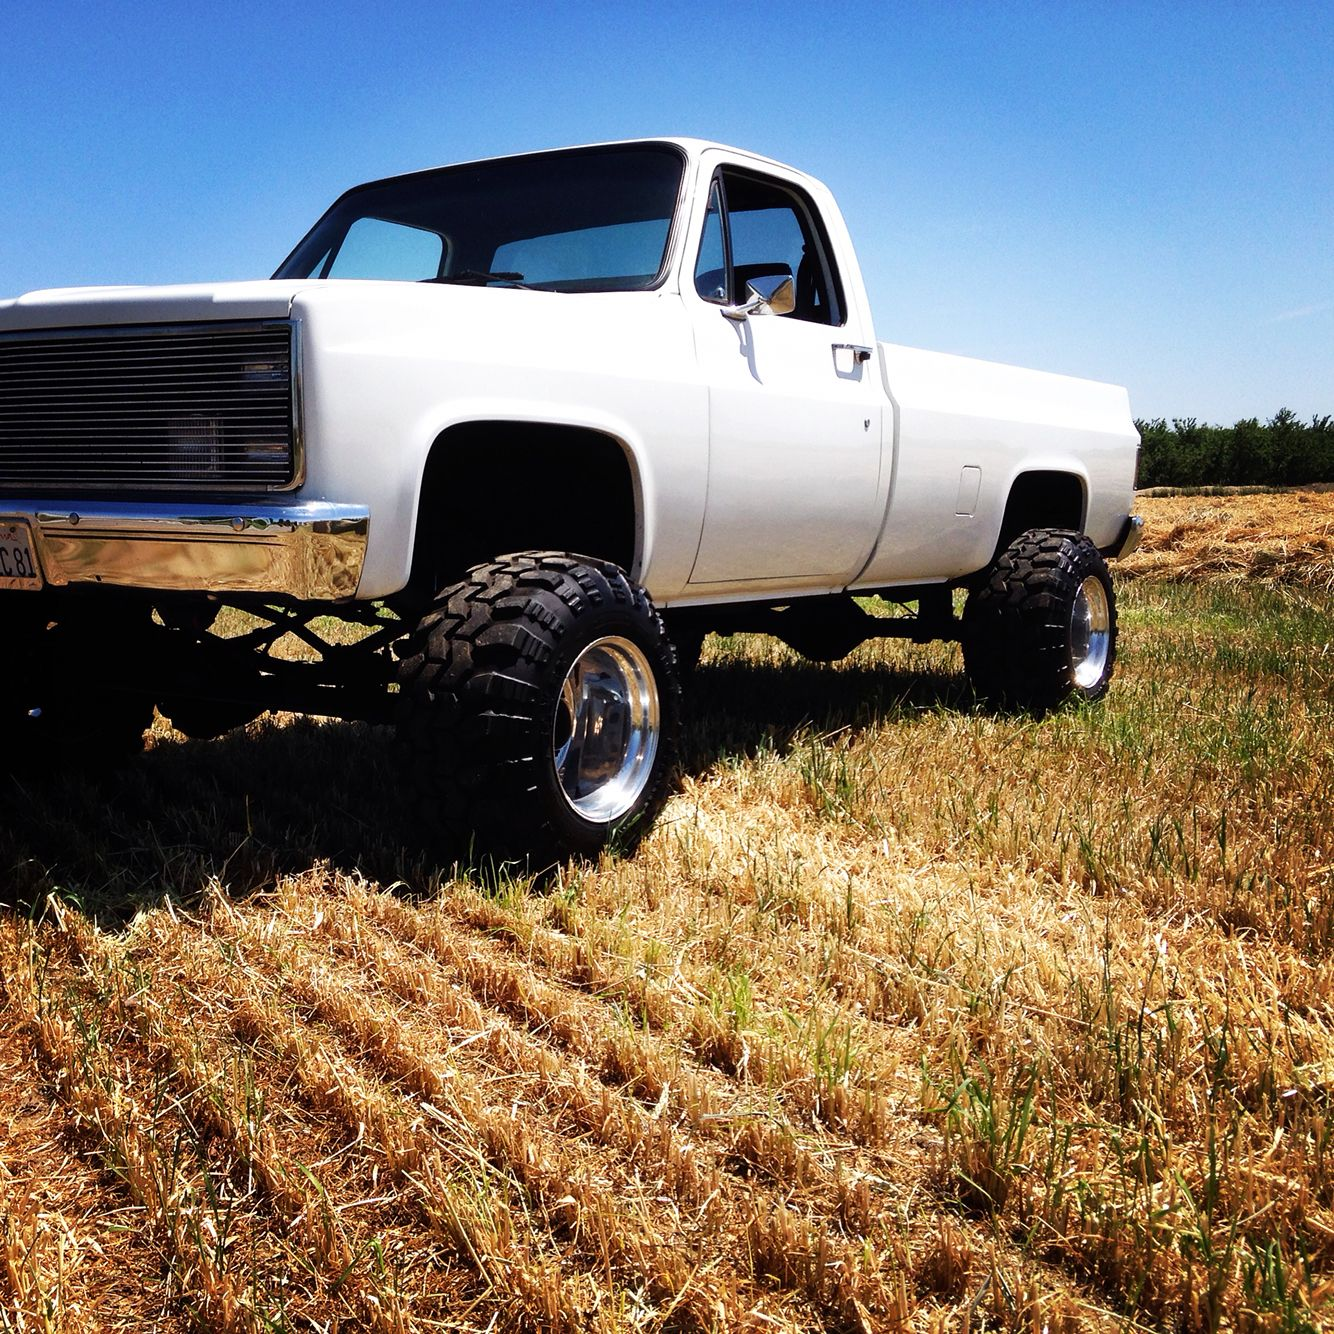 1981 chevy 4x4 lifted weld wheels swampers trucks and pickup trucks old and new pinterest. Black Bedroom Furniture Sets. Home Design Ideas